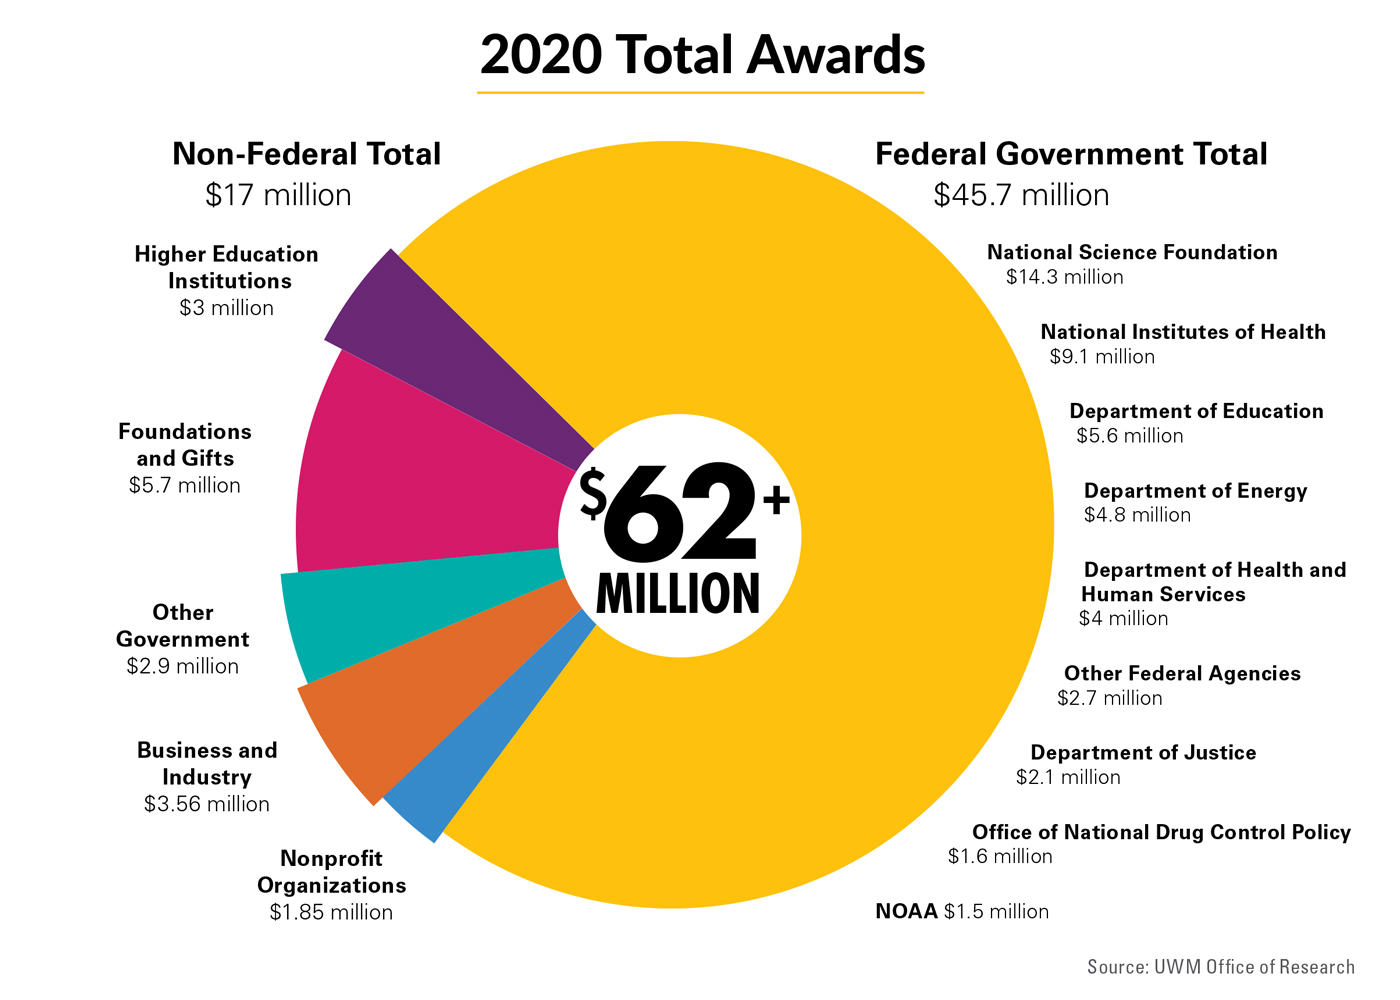 Graphic shows 2020 research awards, broken down by funding agency.